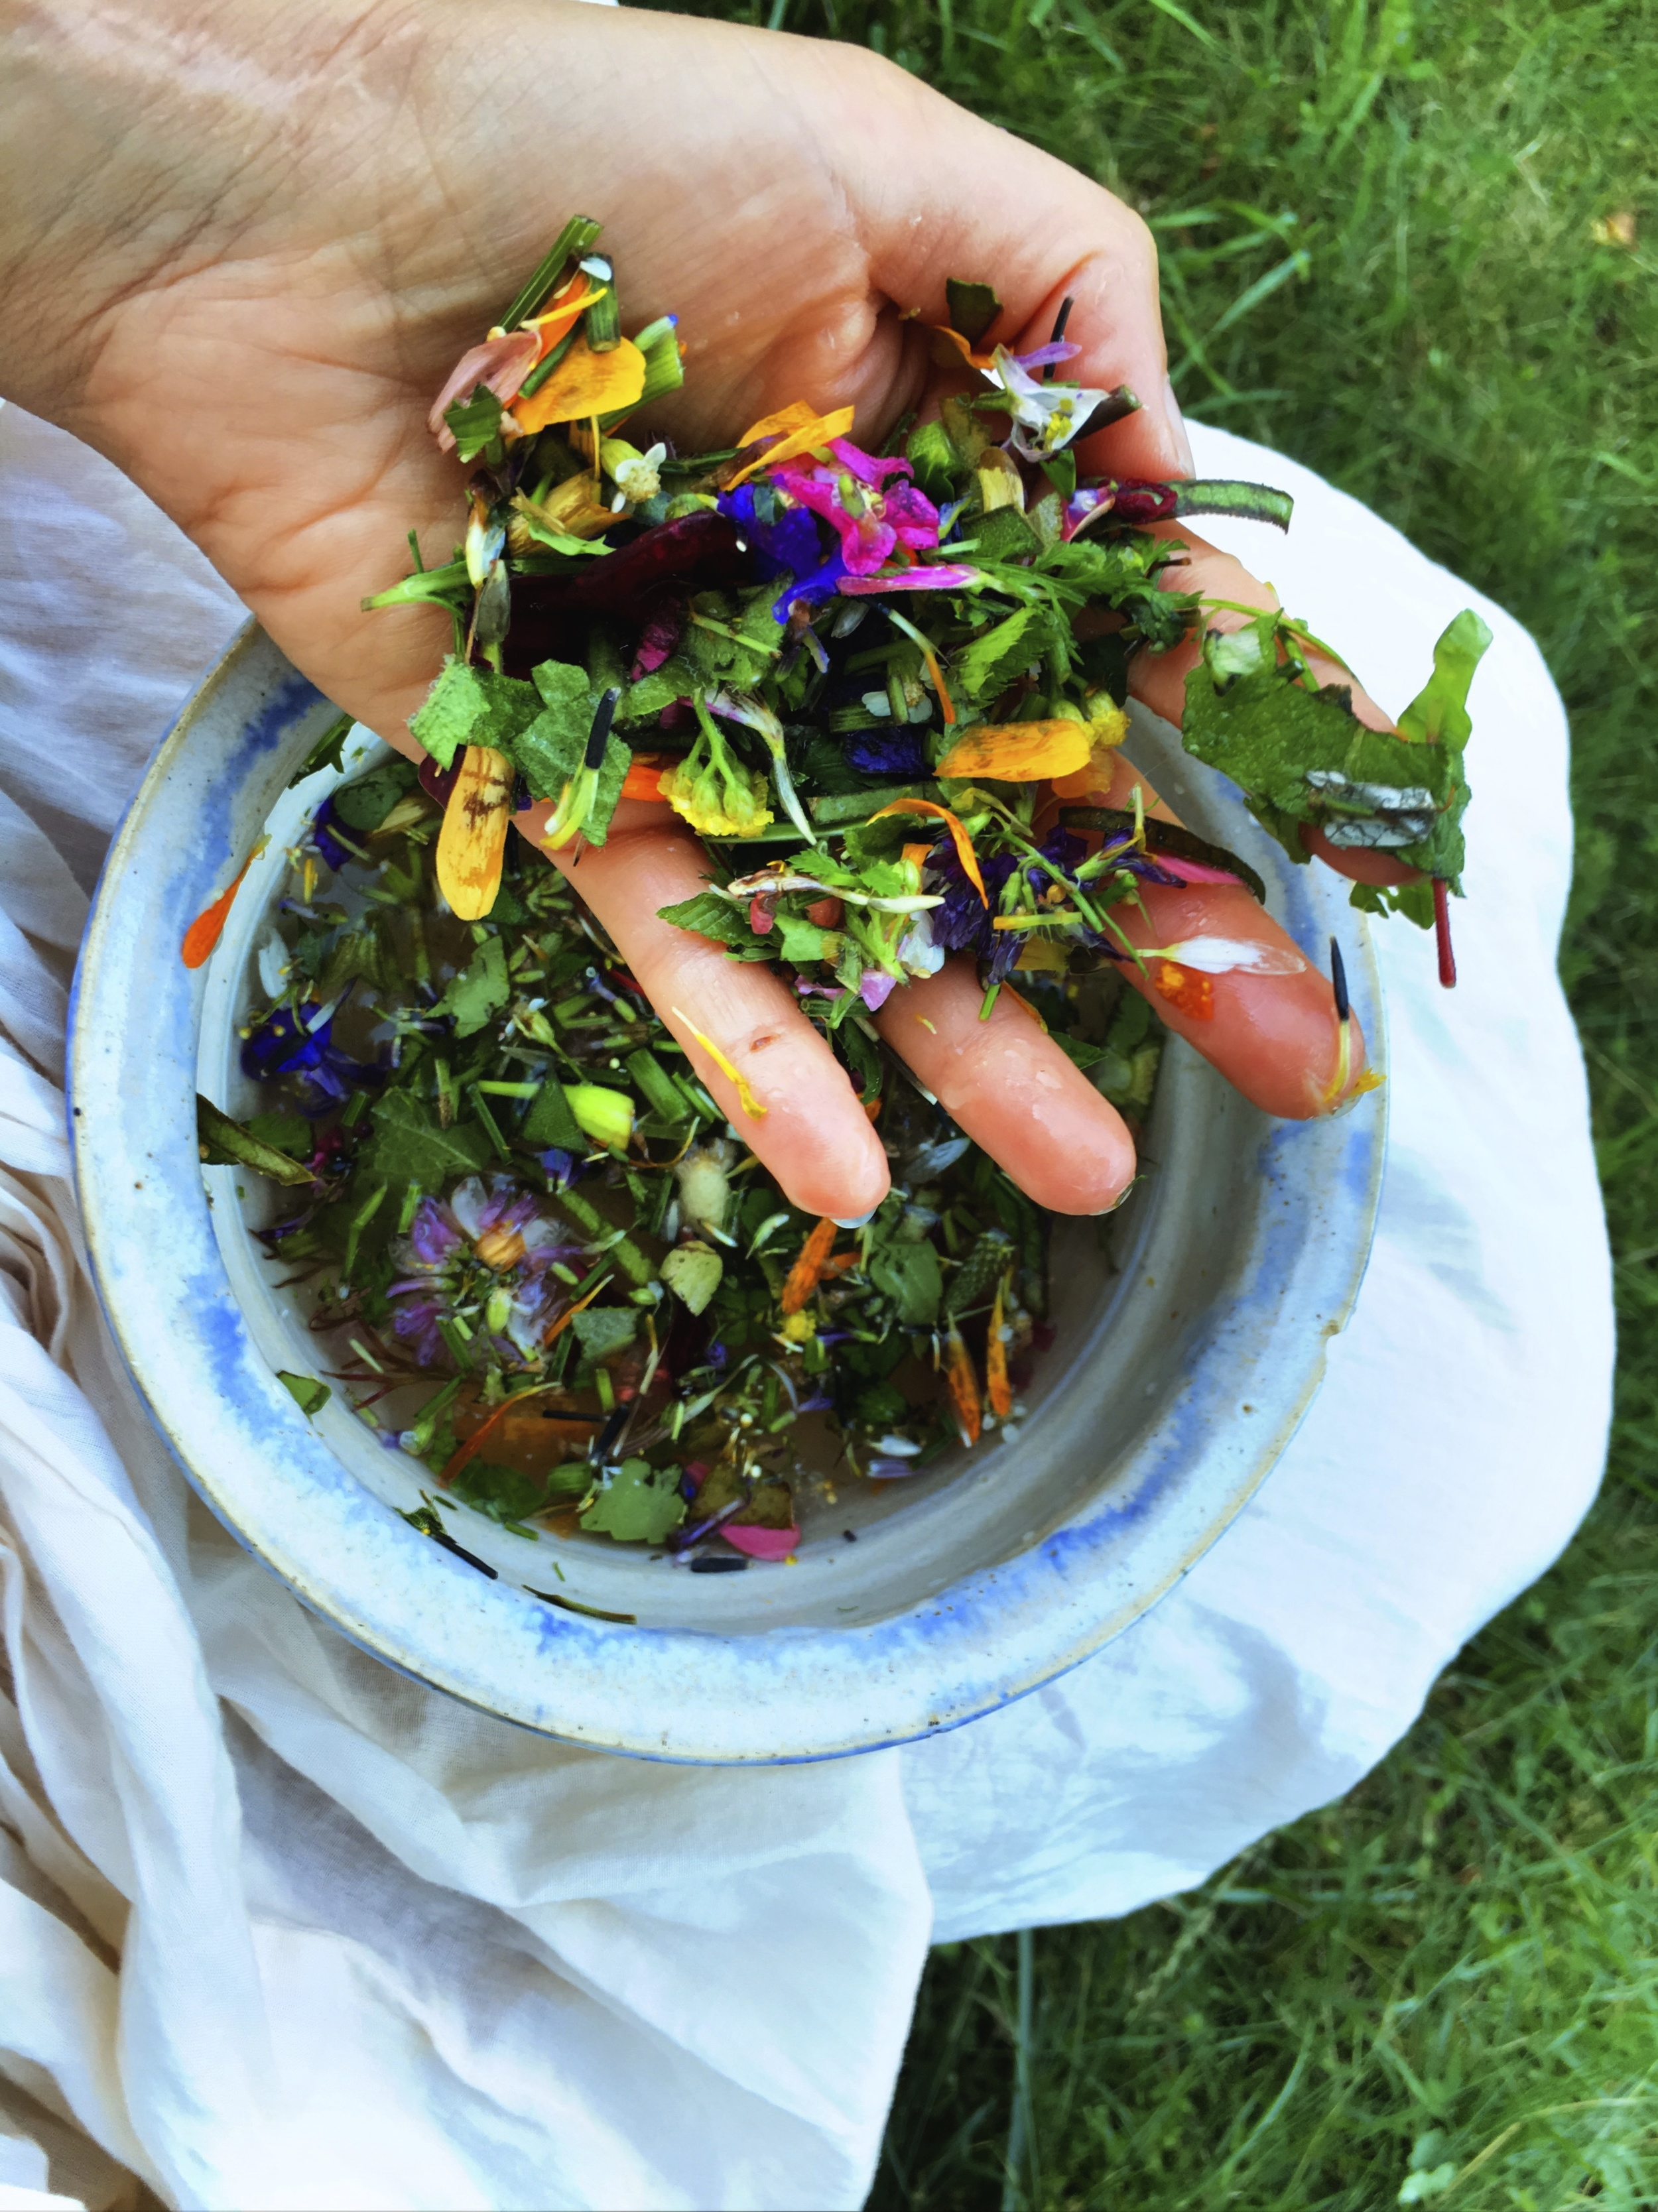 Wild Flowers gathered for Solstice Celebration